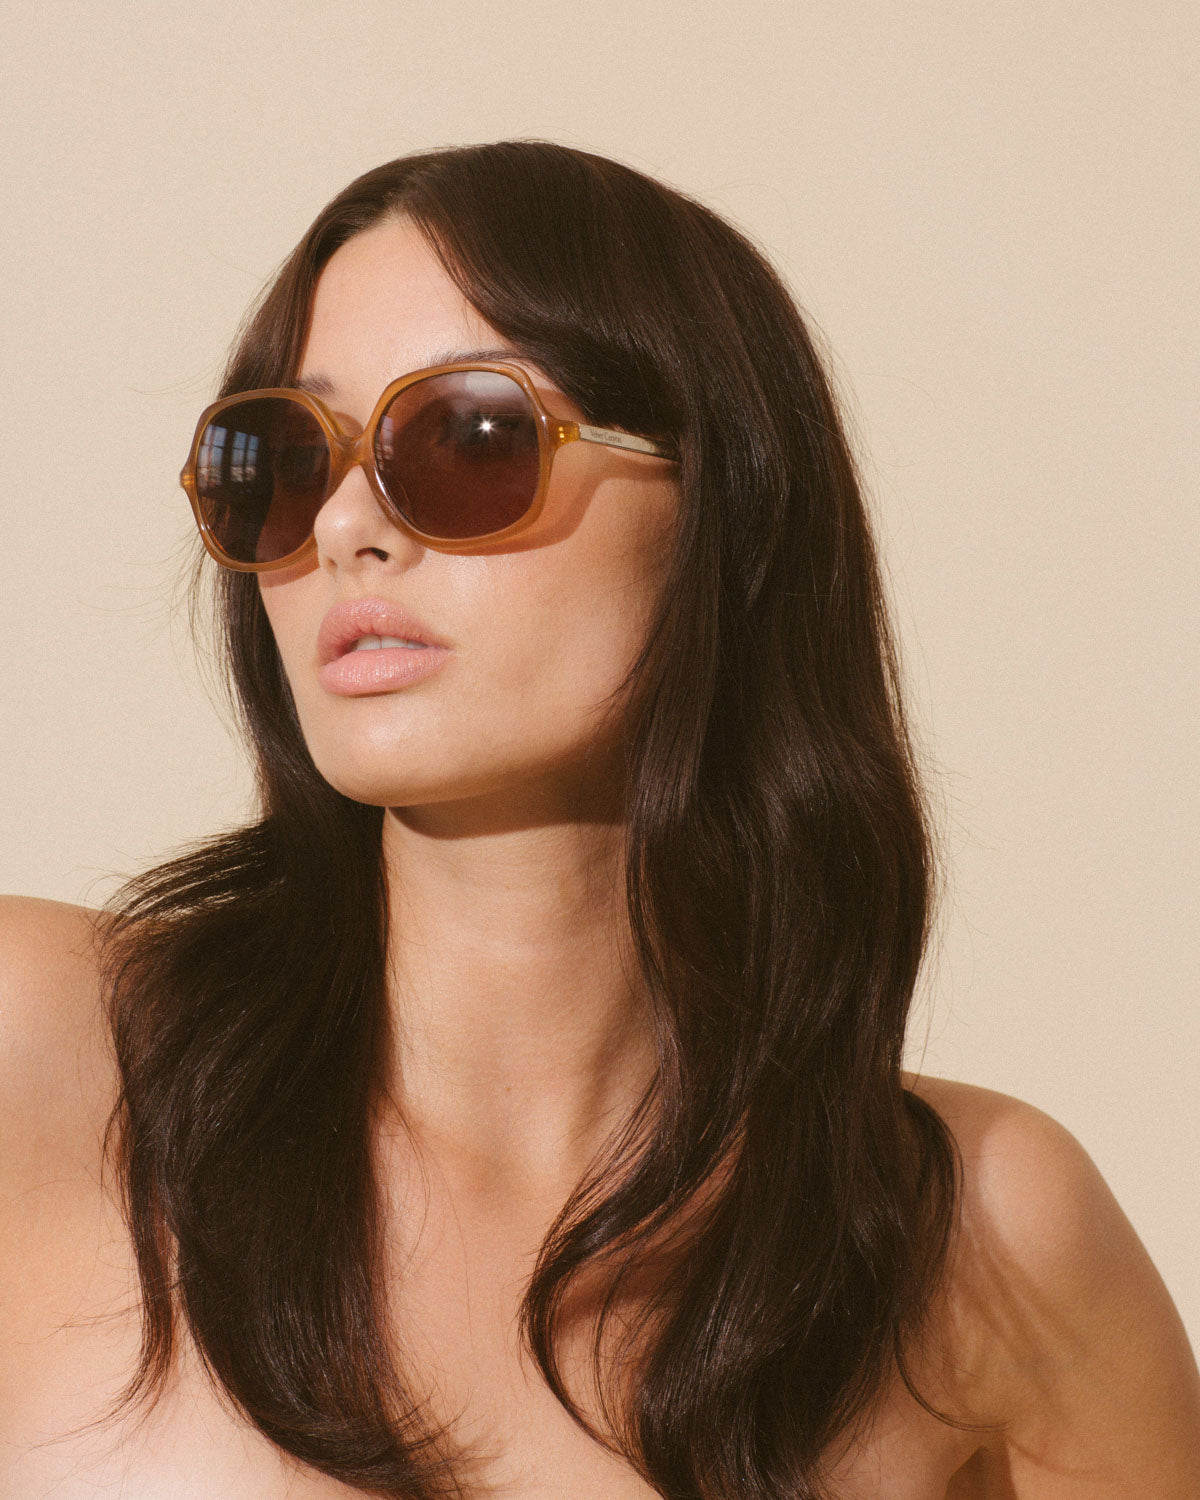 Velvet Canyon Sunglasses Lucky Sevens ToffeeVelvet Canyon 70s vintage inspired sunglasses, Lucky Sevens Toffee